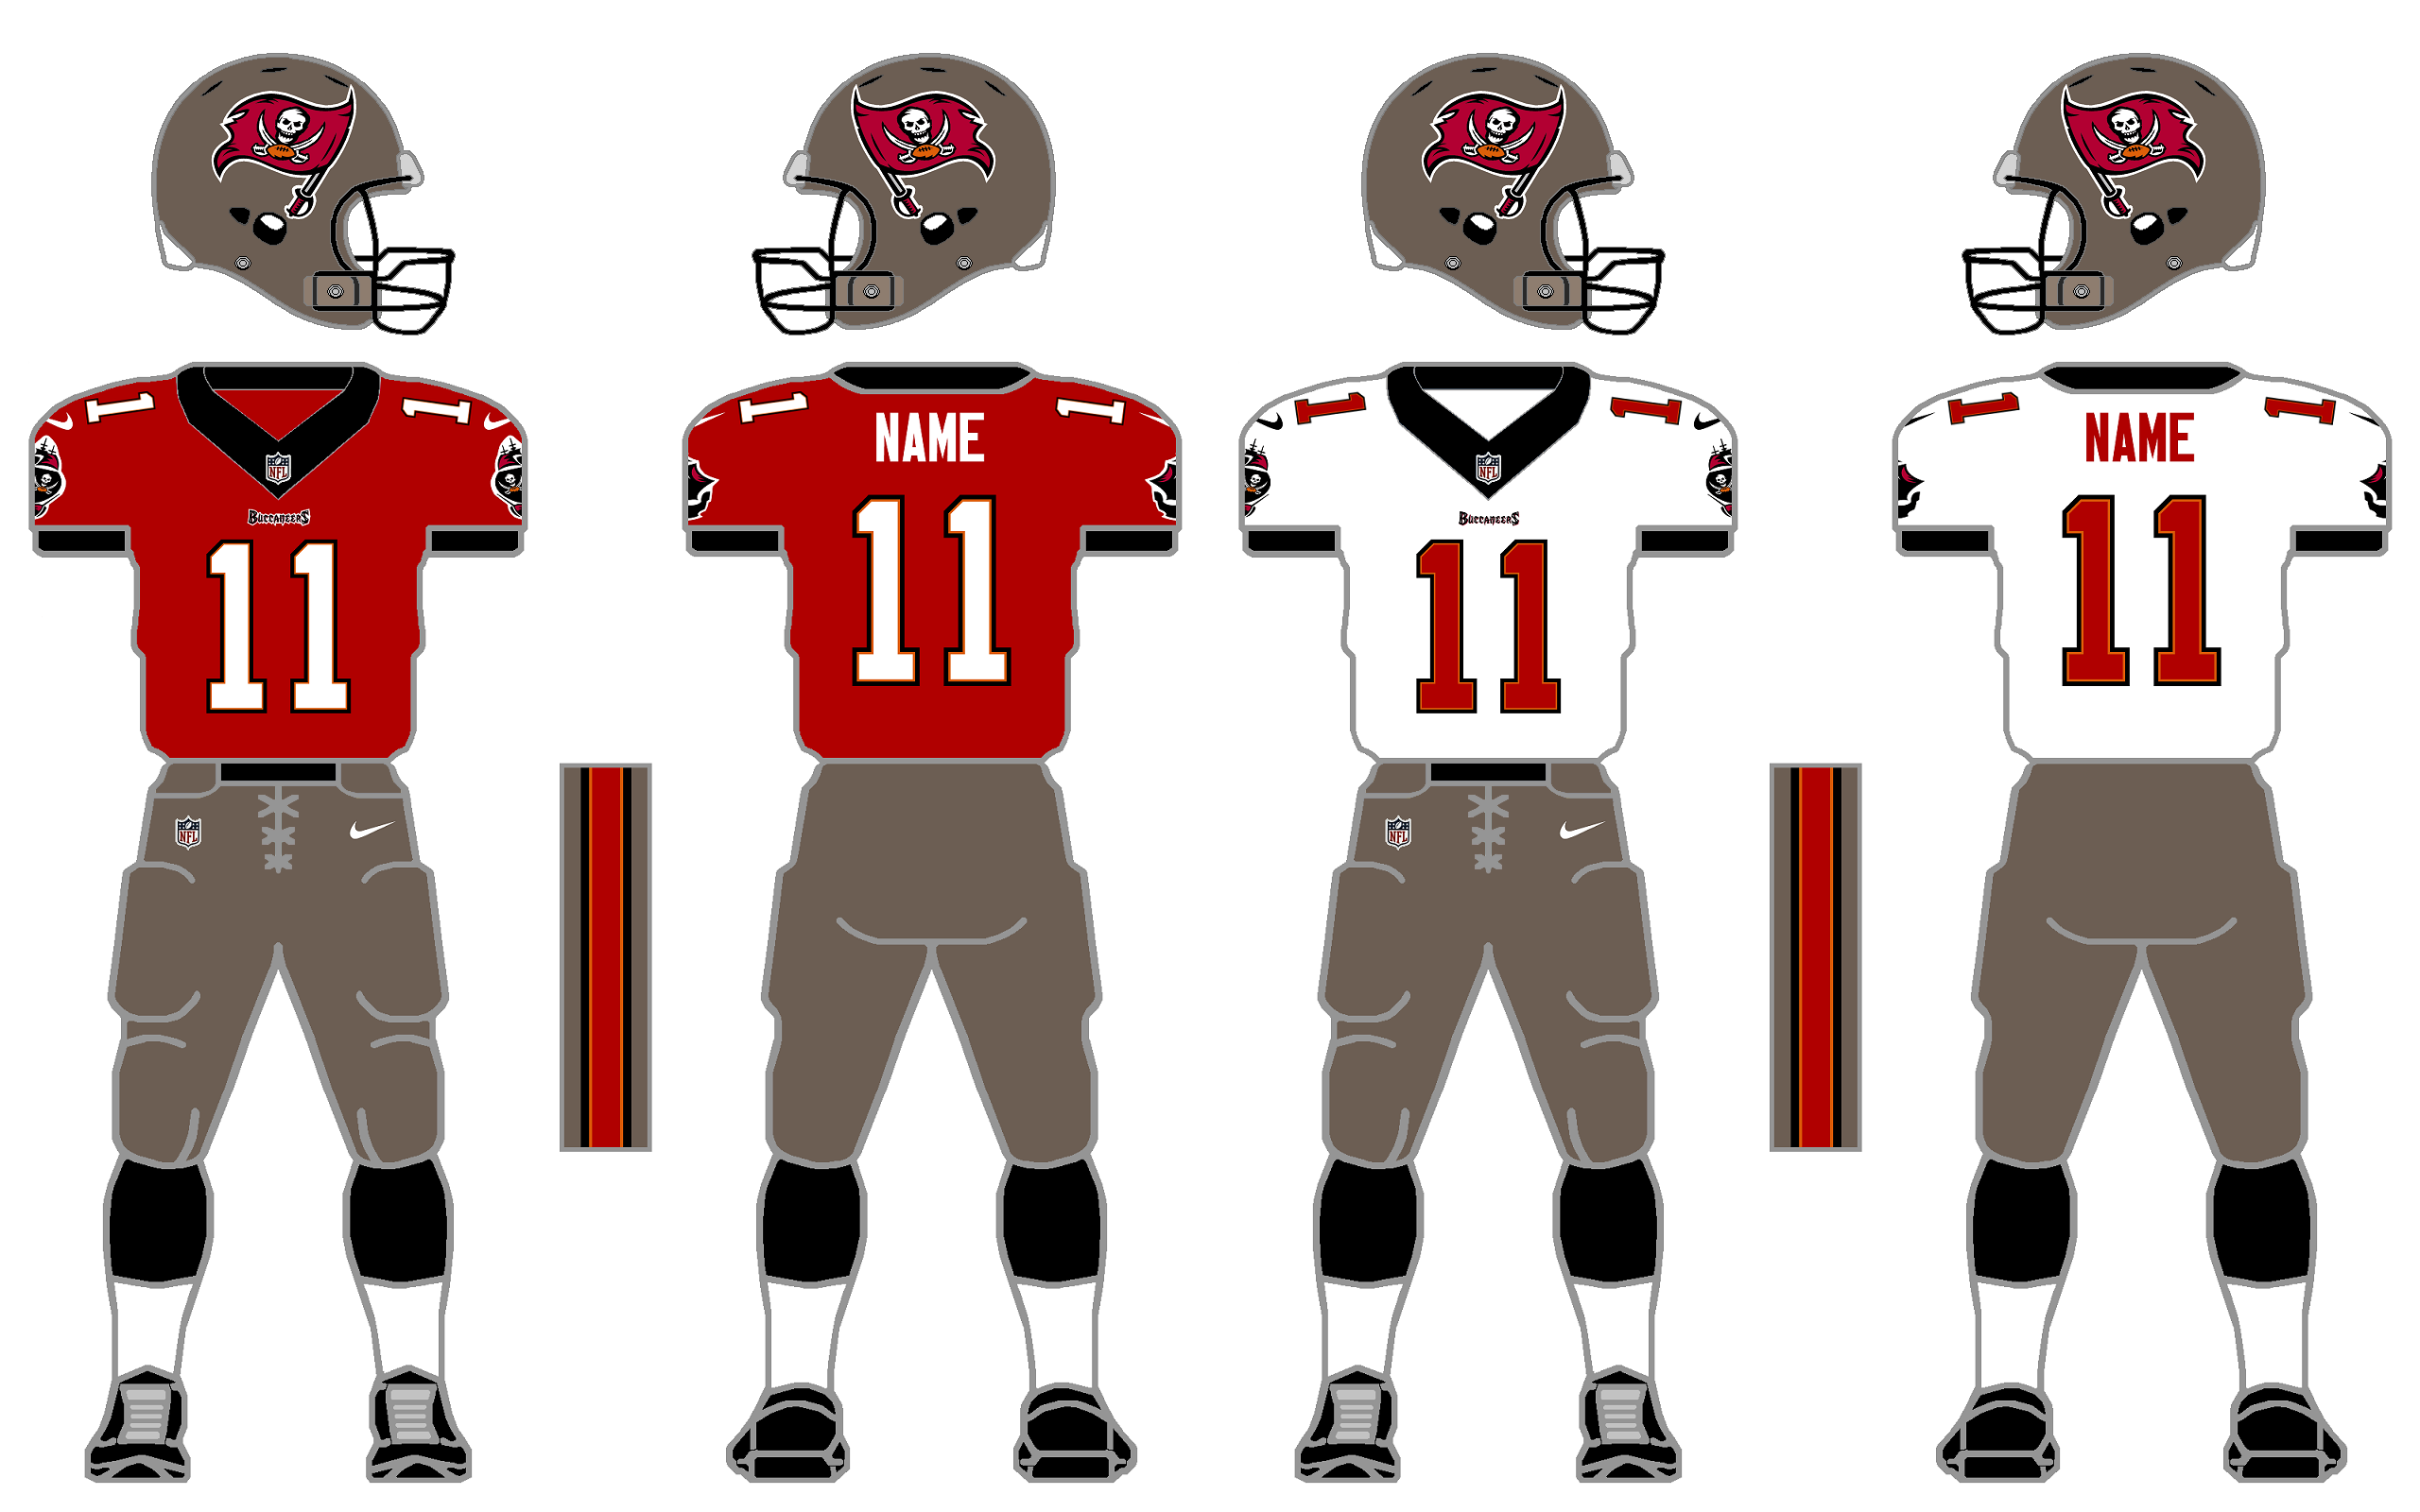 Nike Elite 51 Buccaneers Uniform Tweak by SimplyMoono on DeviantArt